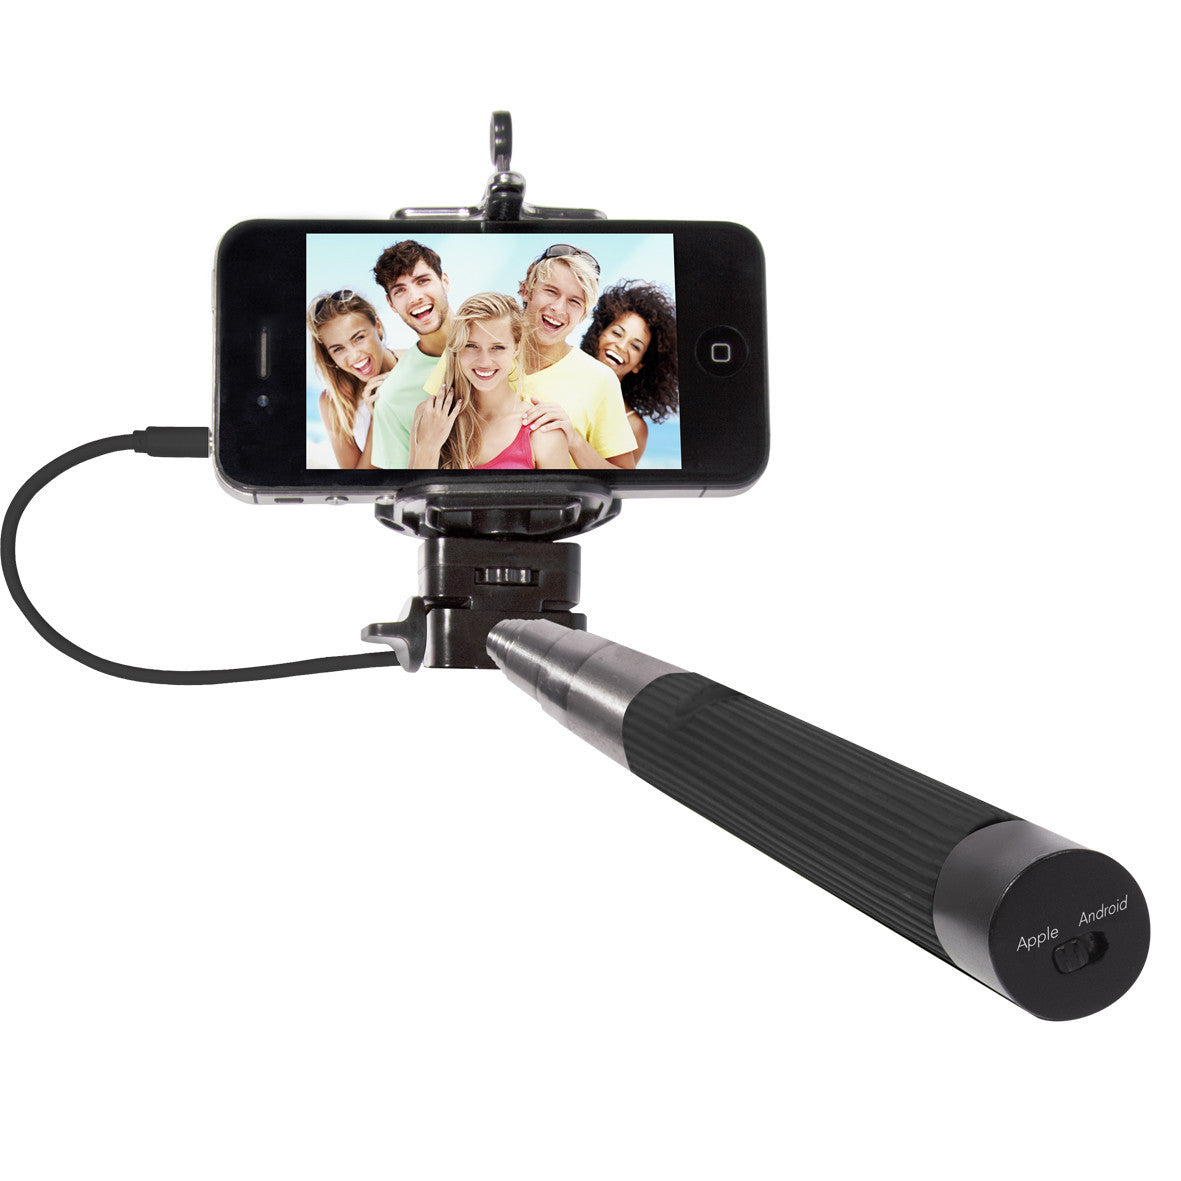 Click Stick iPhone Photo Extender. Selfie Stick